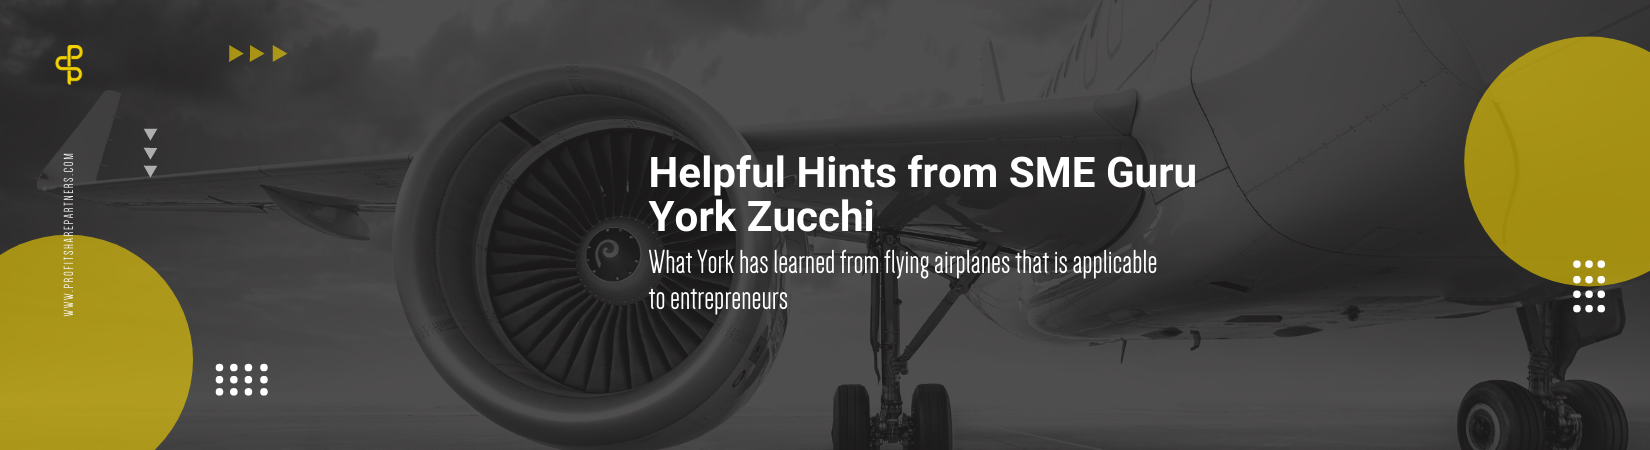 what York has learned from flying airplanes that is applicable to entrepreneurs